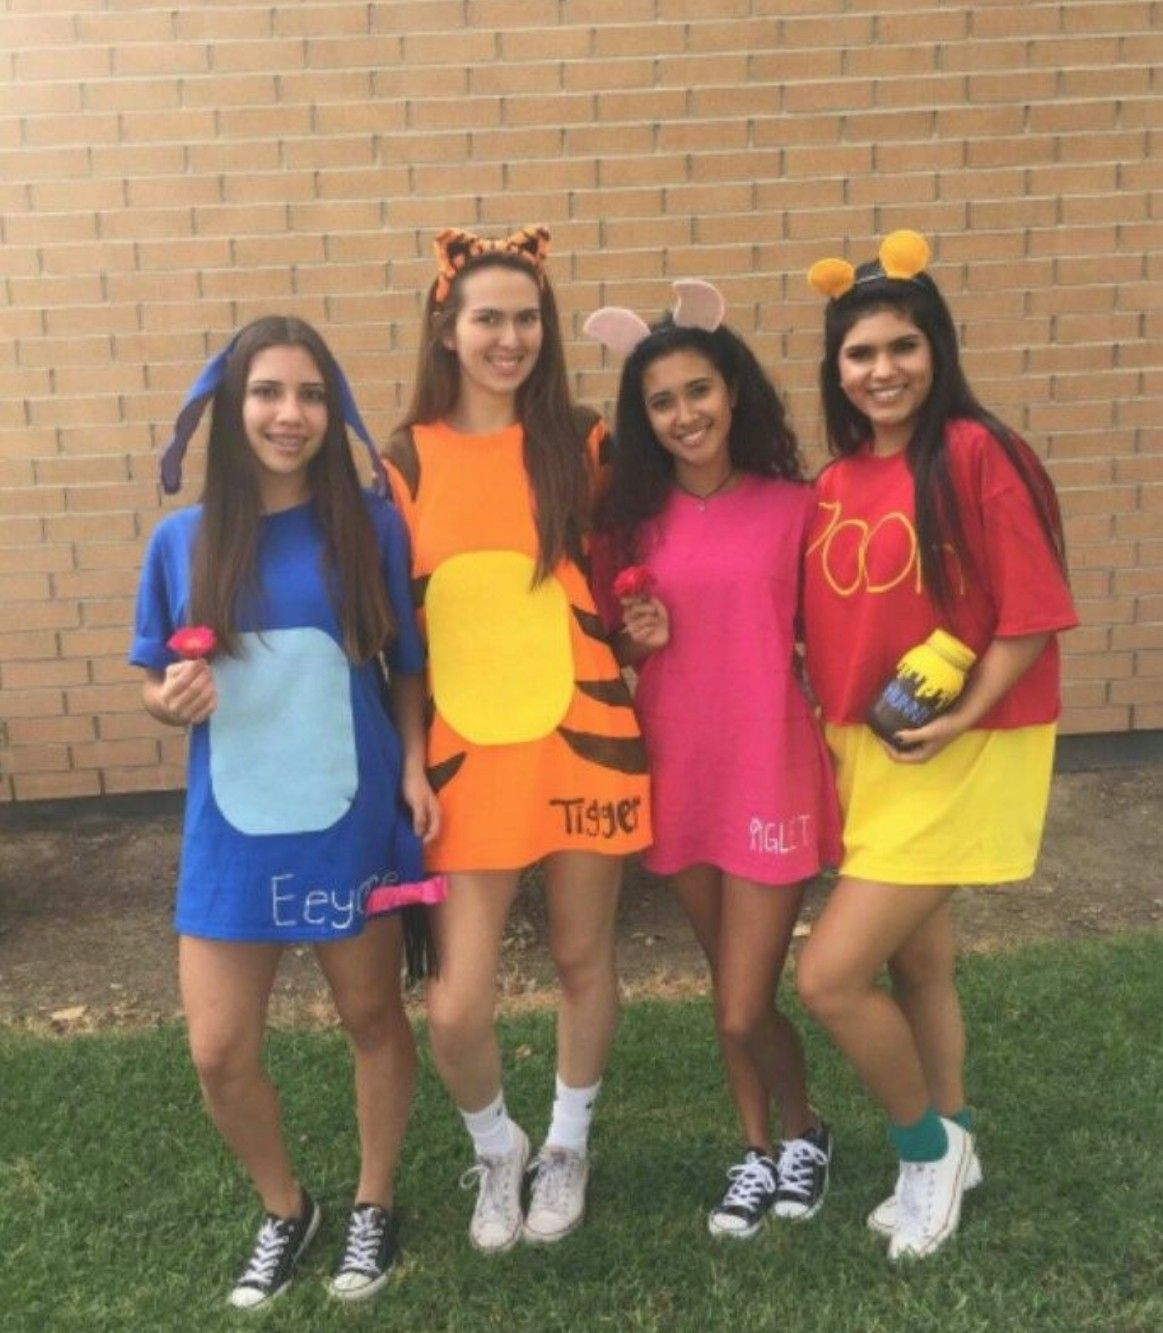 Pin by Lina on halloween  Cute group halloween costumes, Cute